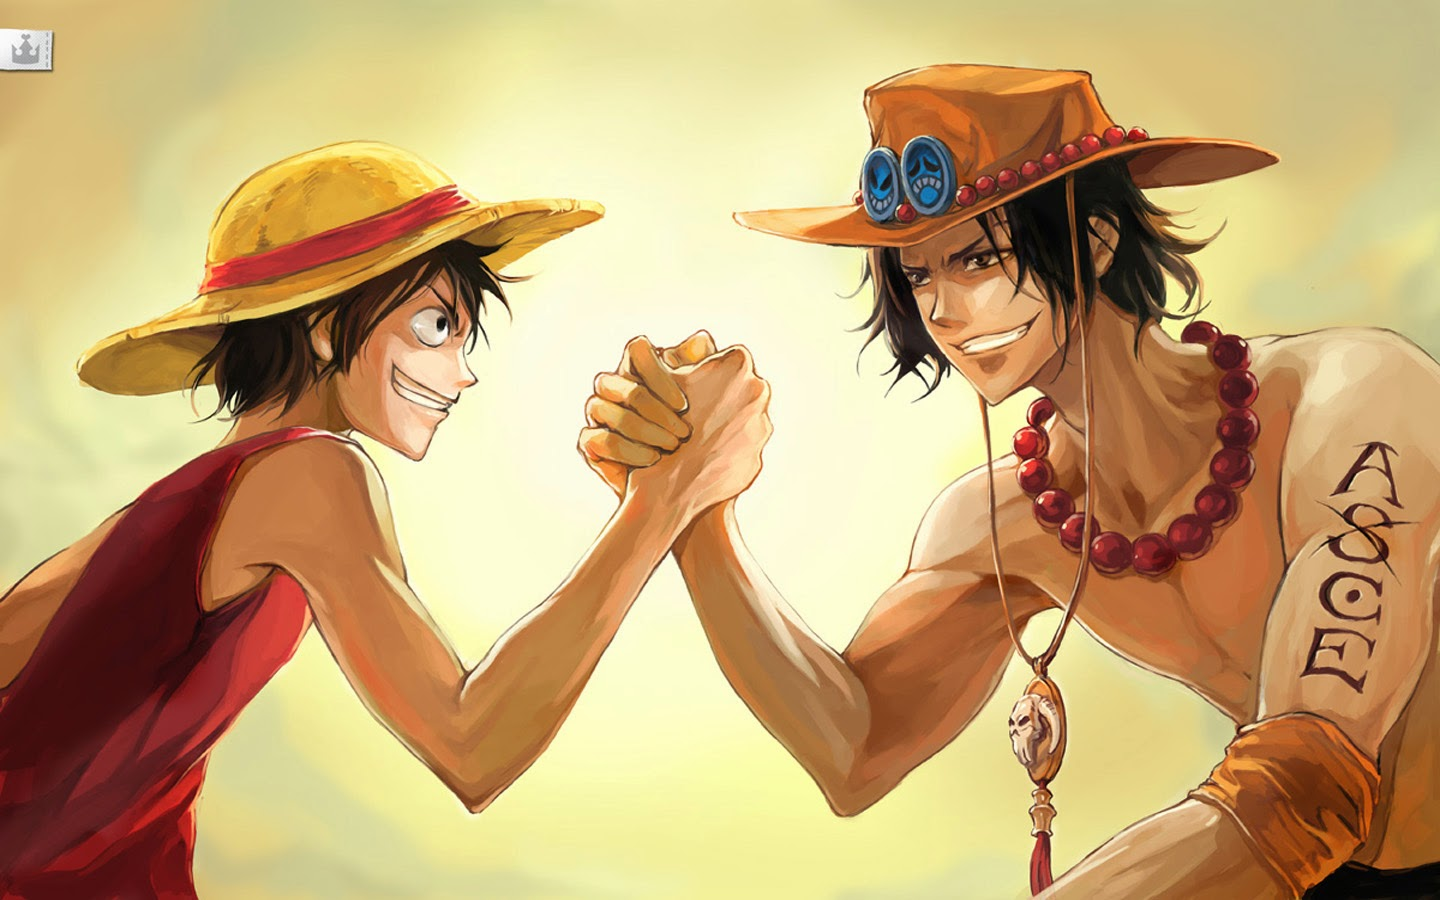 Why So Serious Wallpaper Iphone 6 Download One Piece Luffy And Ace Pictures Is Cool Wallpapers